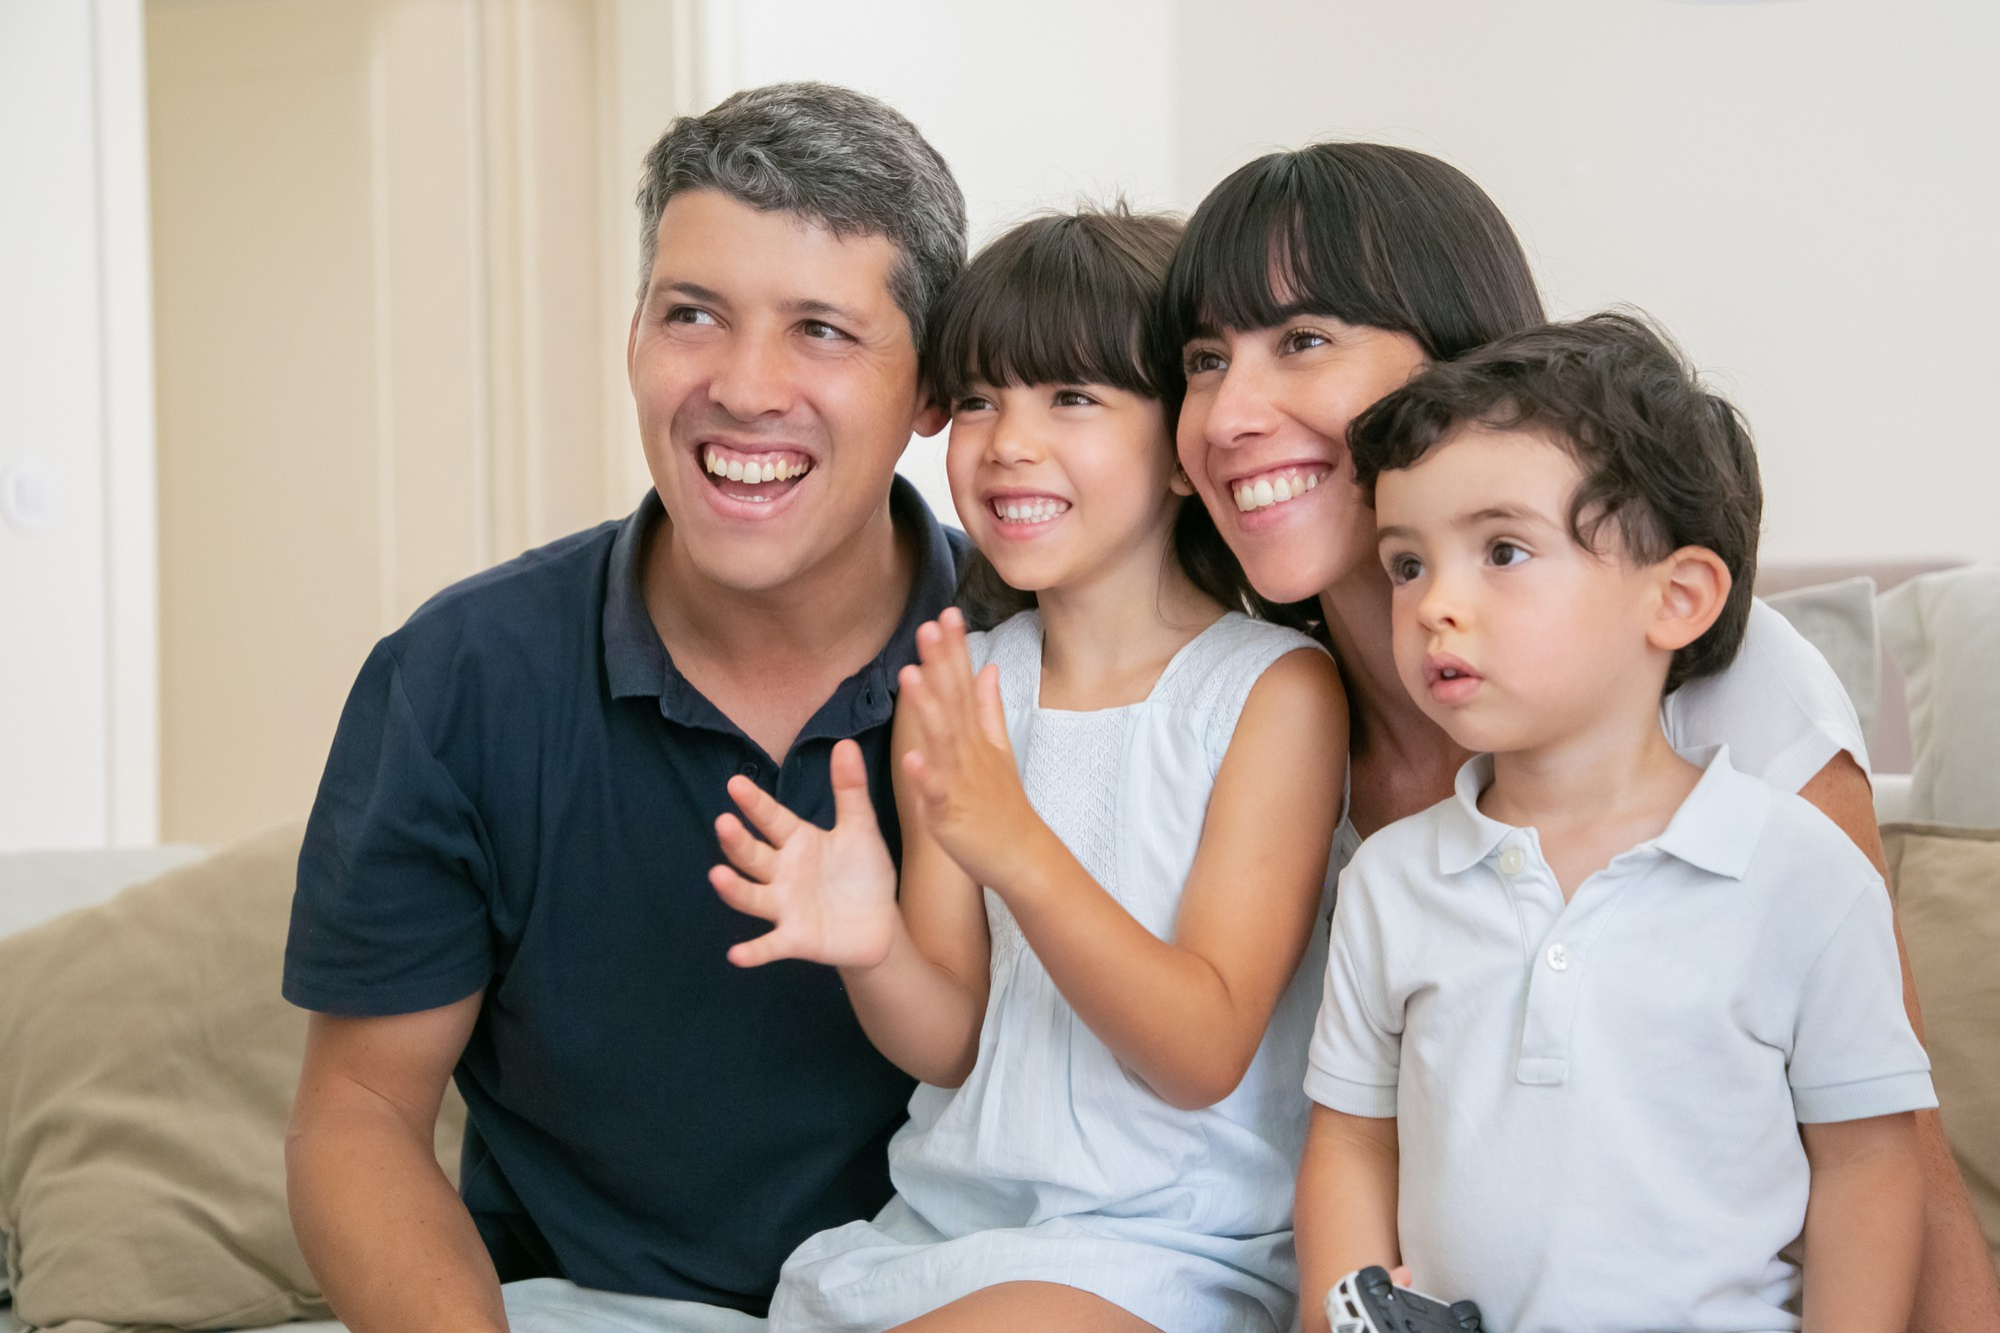 excited joyful parent couple with two kids watching tv sitting on couch in living room looking away and smiling